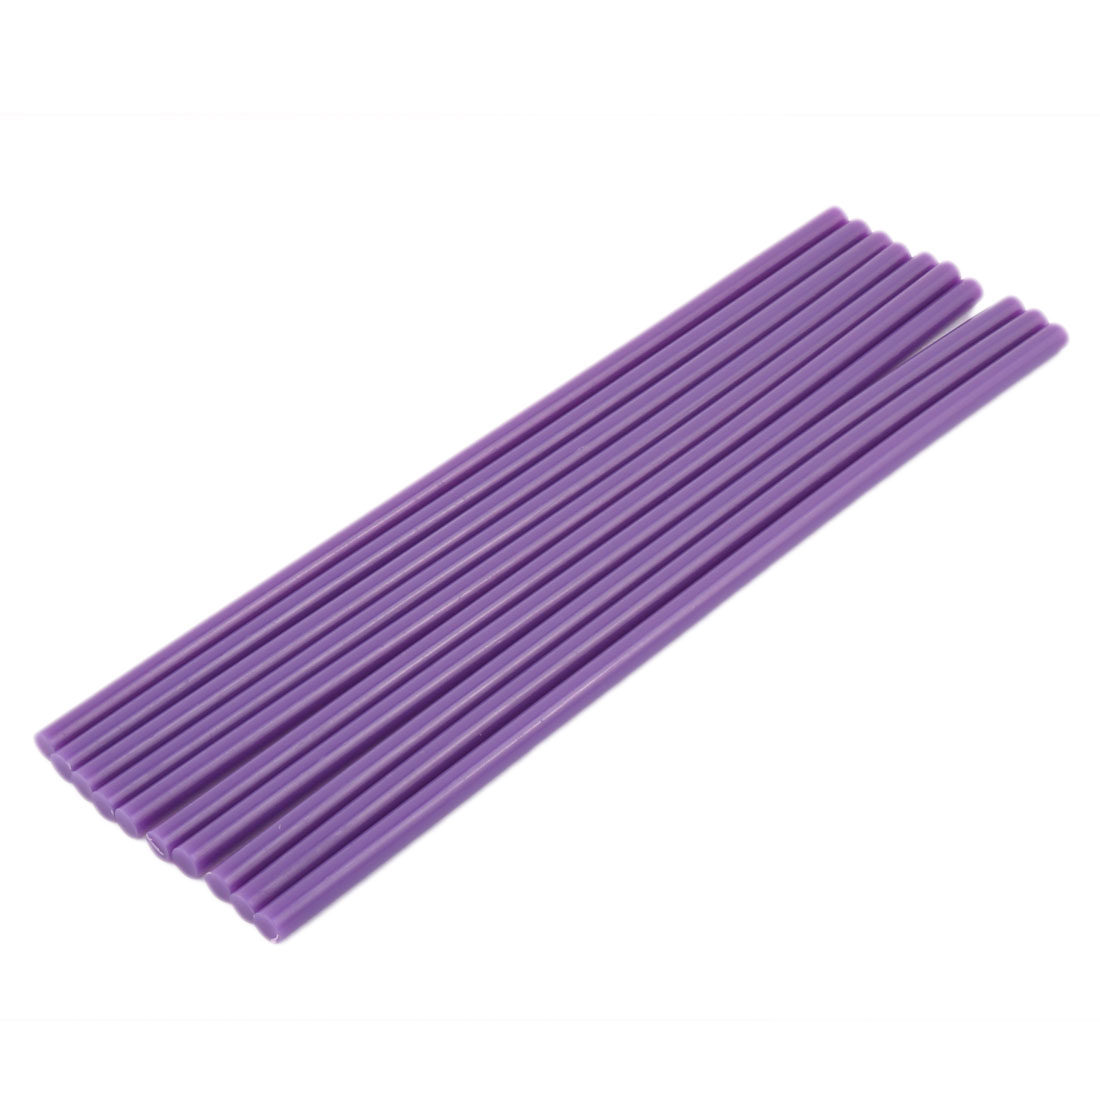 10Pcs 7mm x 250mm Purple Hot Melt Glue Stick for Electric Tool Hot Melt Glue Gun